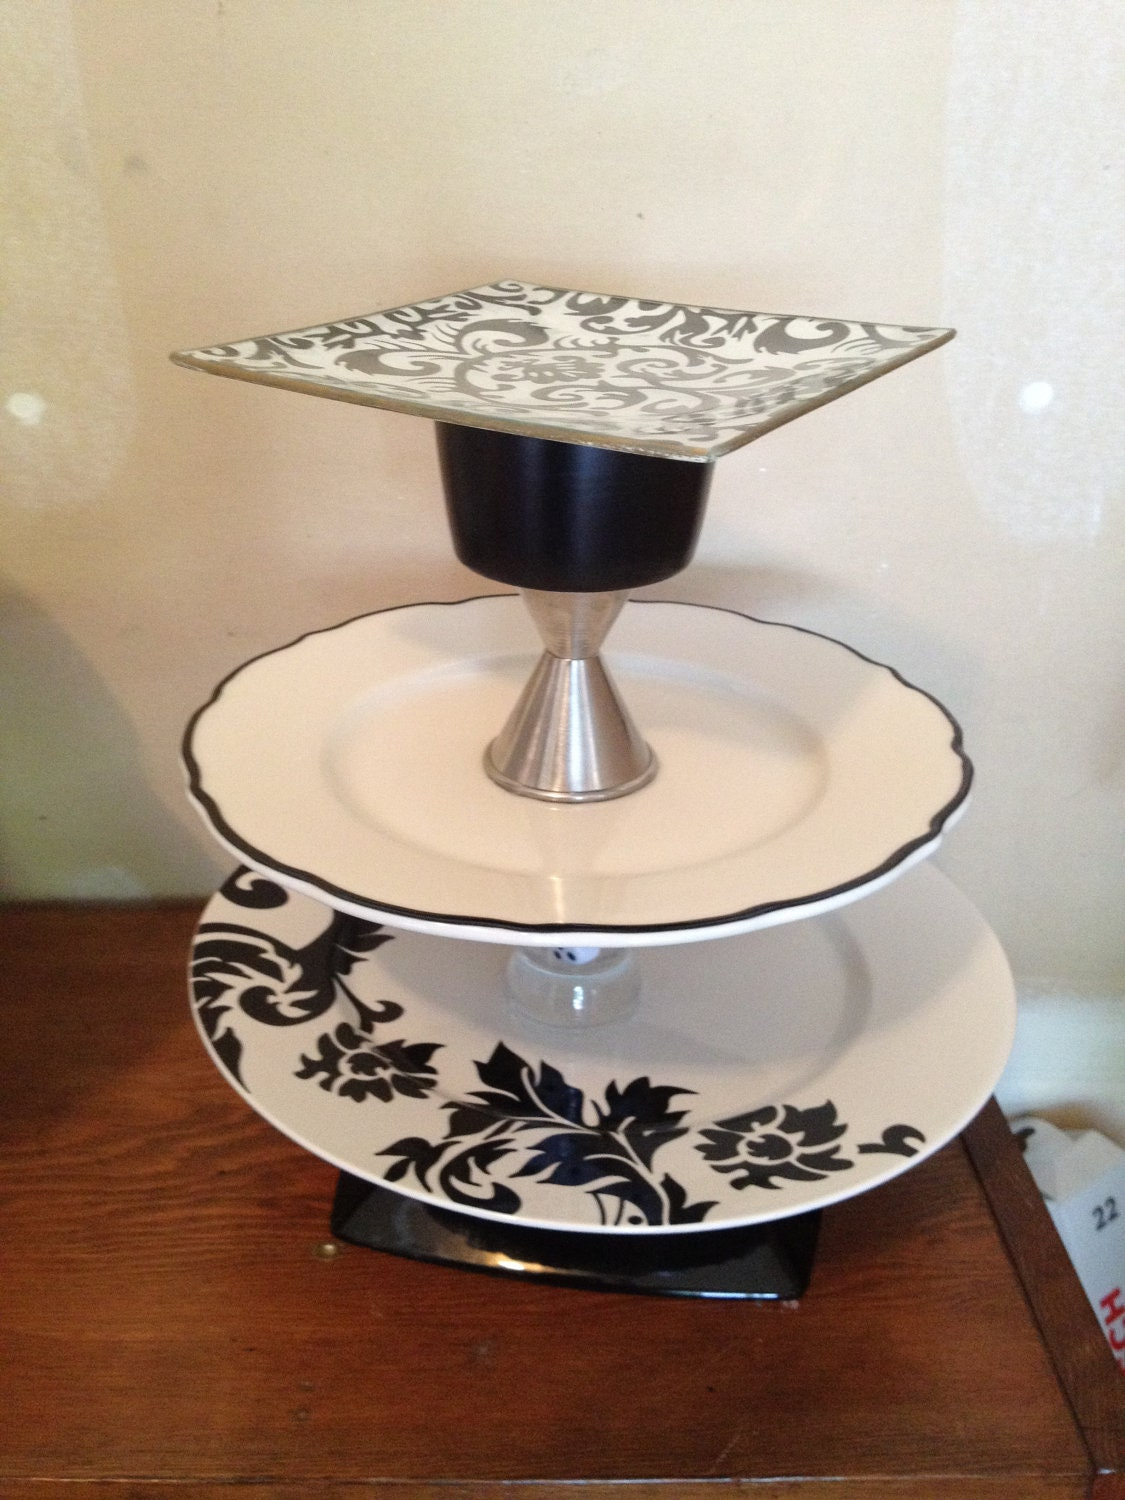 Cake stands come in a variety of colors, including popular options like black and white, styles, and materials, including glass, to serve all your baking and dessert needs. Choose from a classic look with glass cake stands or go with a material that is more in line with your personal style.